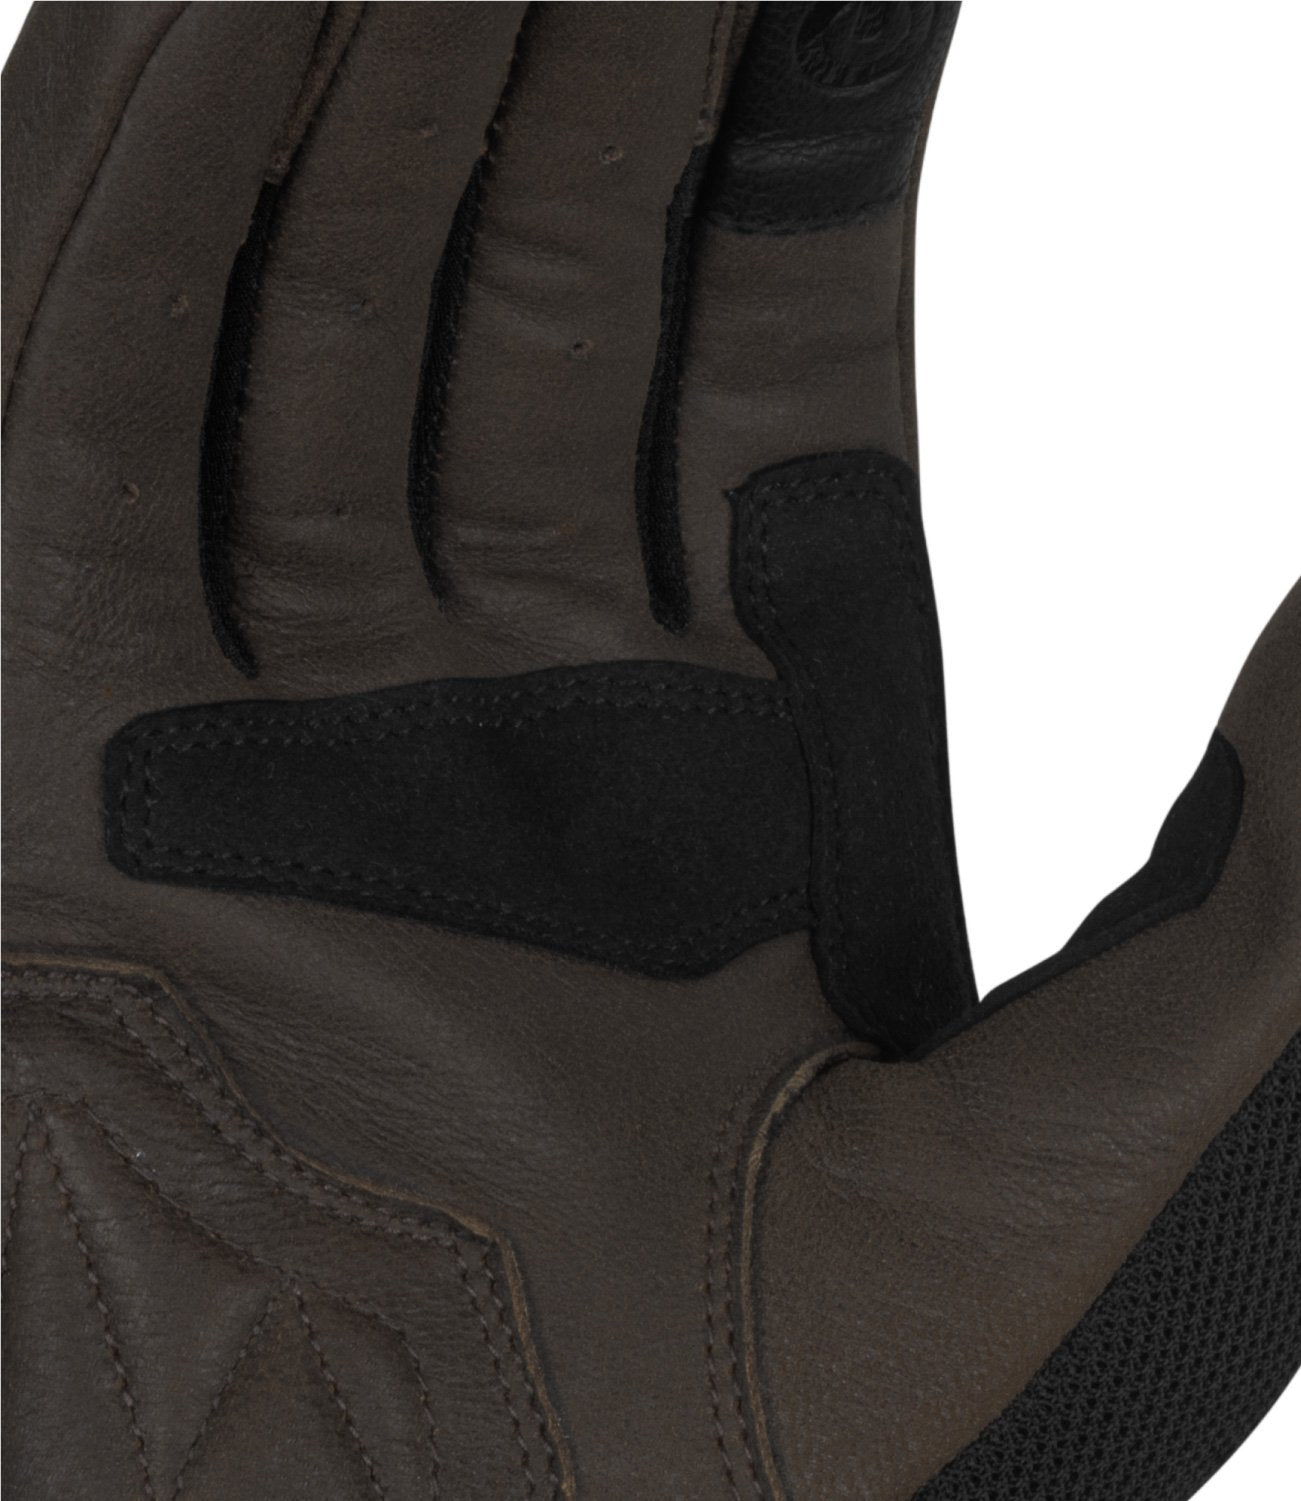 Rynox Urban Gloves Brown 6